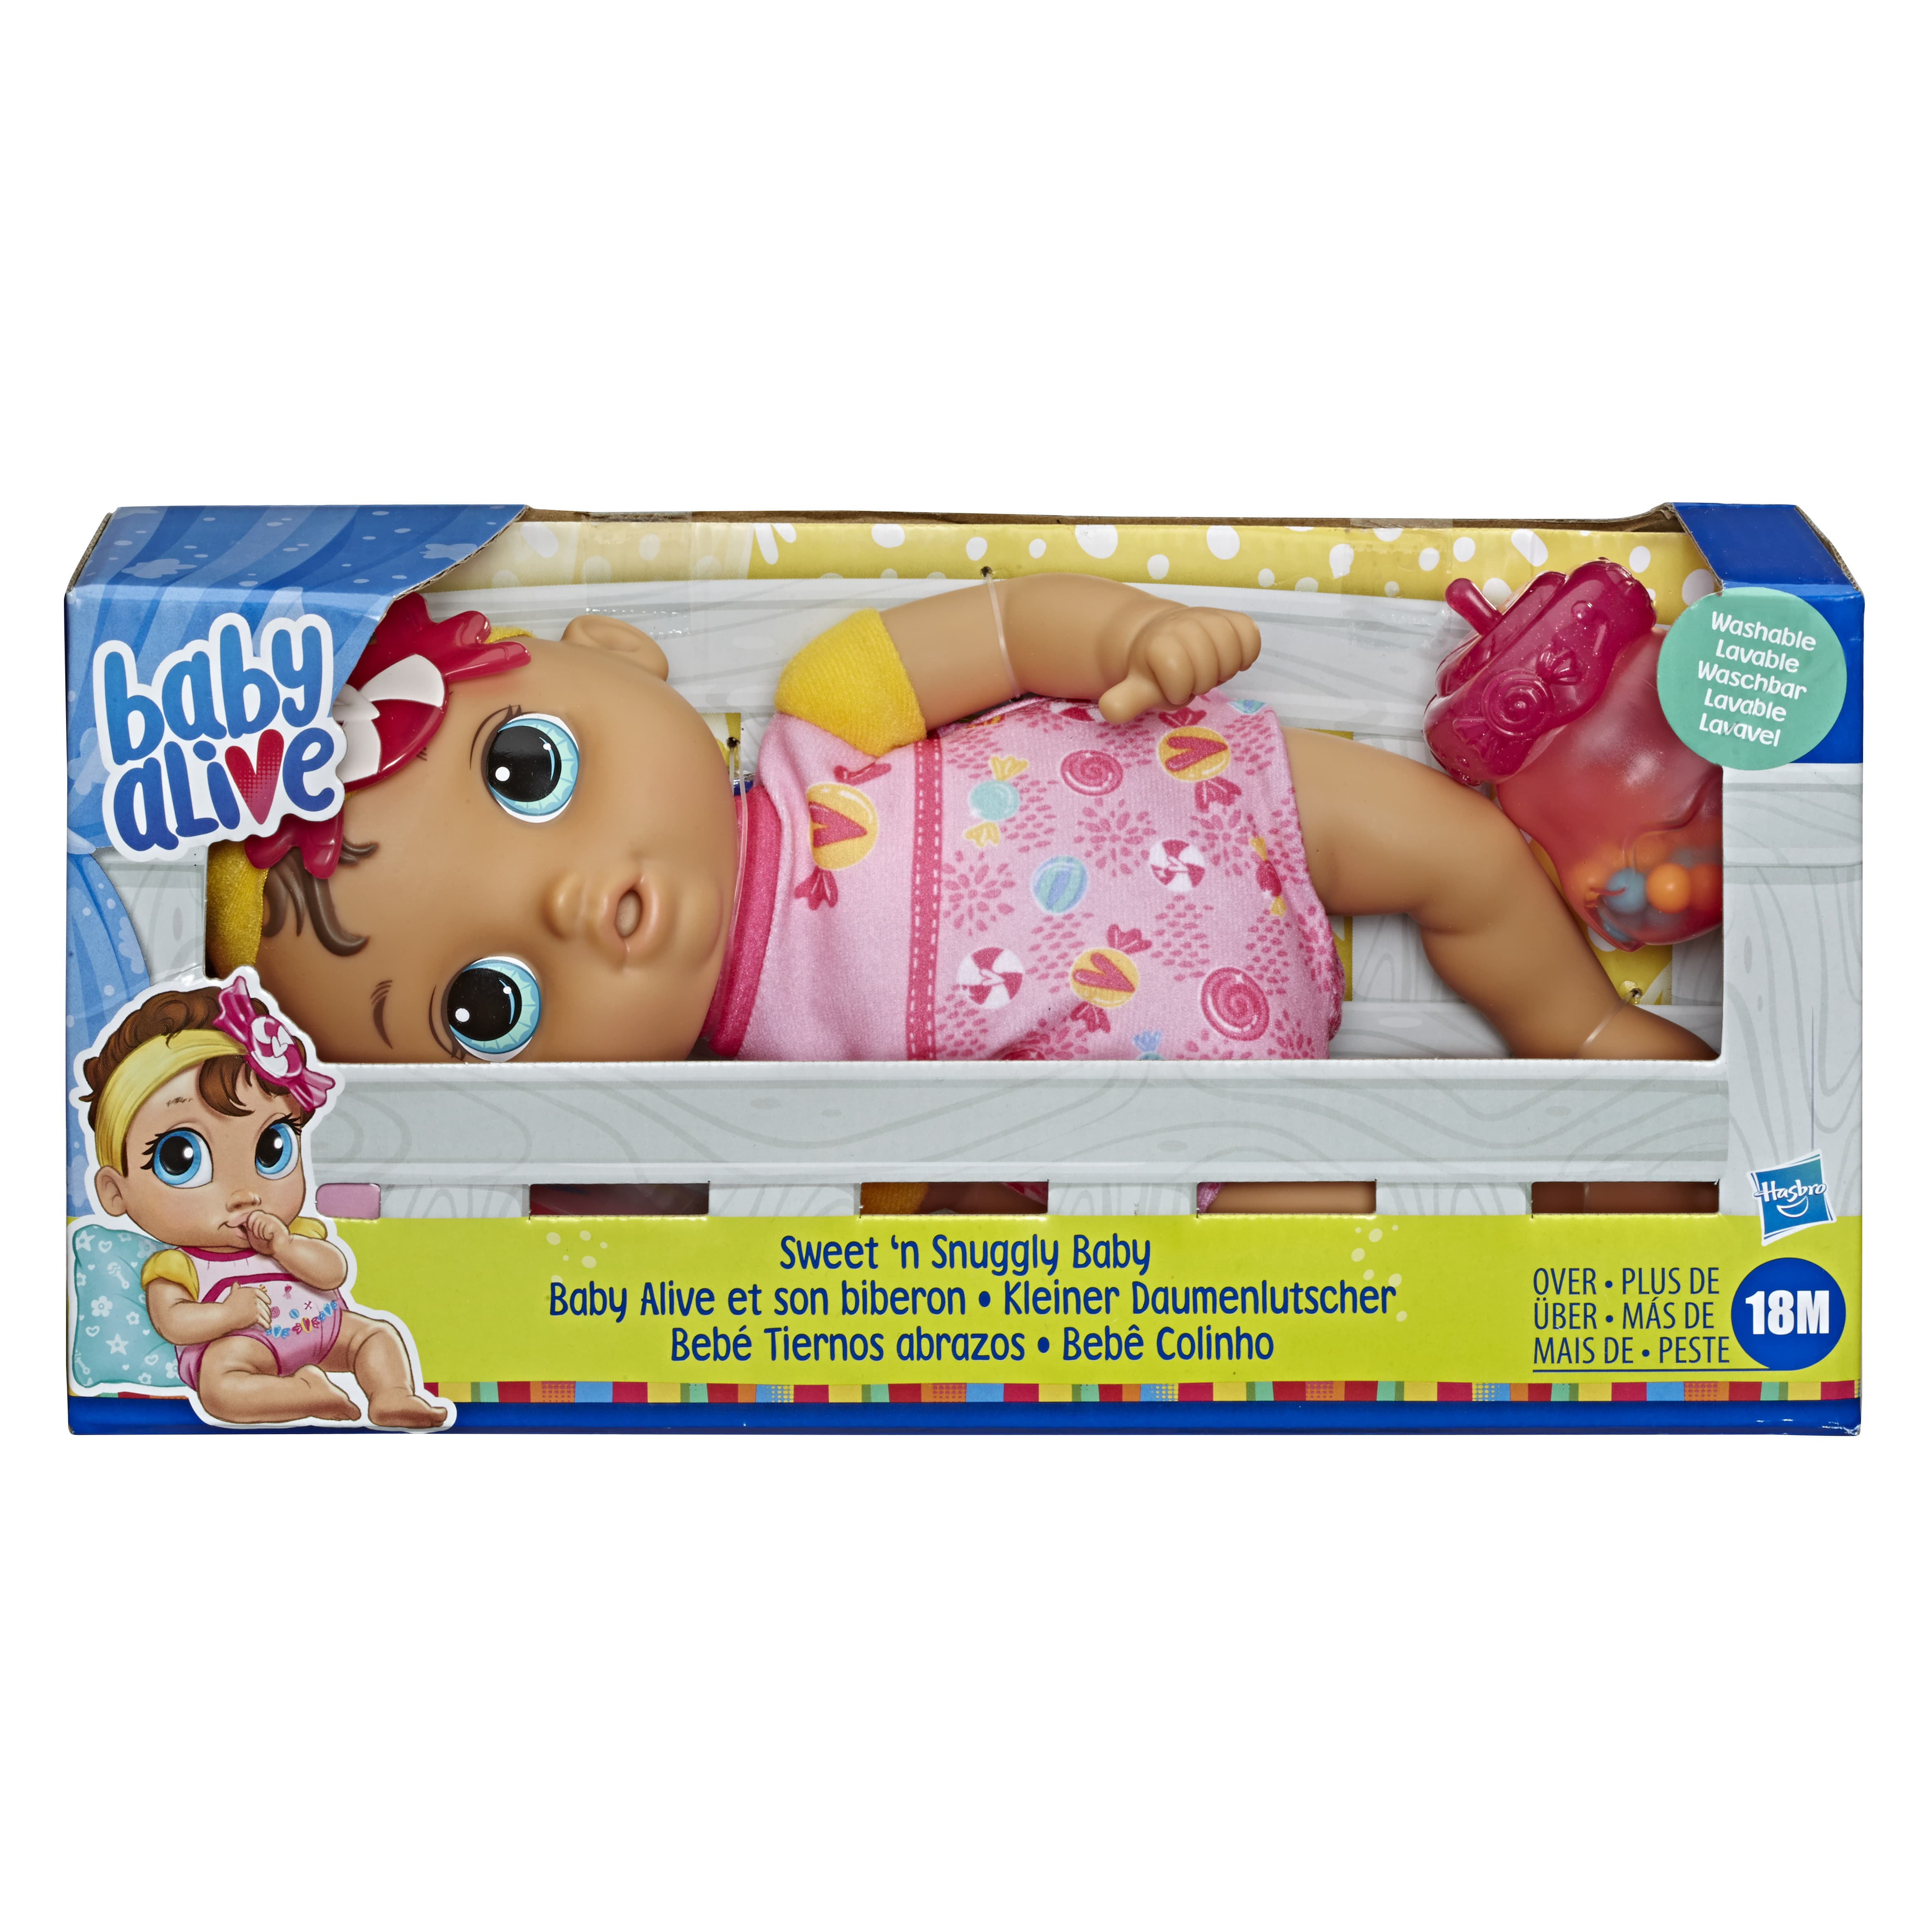 E7599 BABY ALIVE HAPPY SWEET N SNUGGLY In Pack